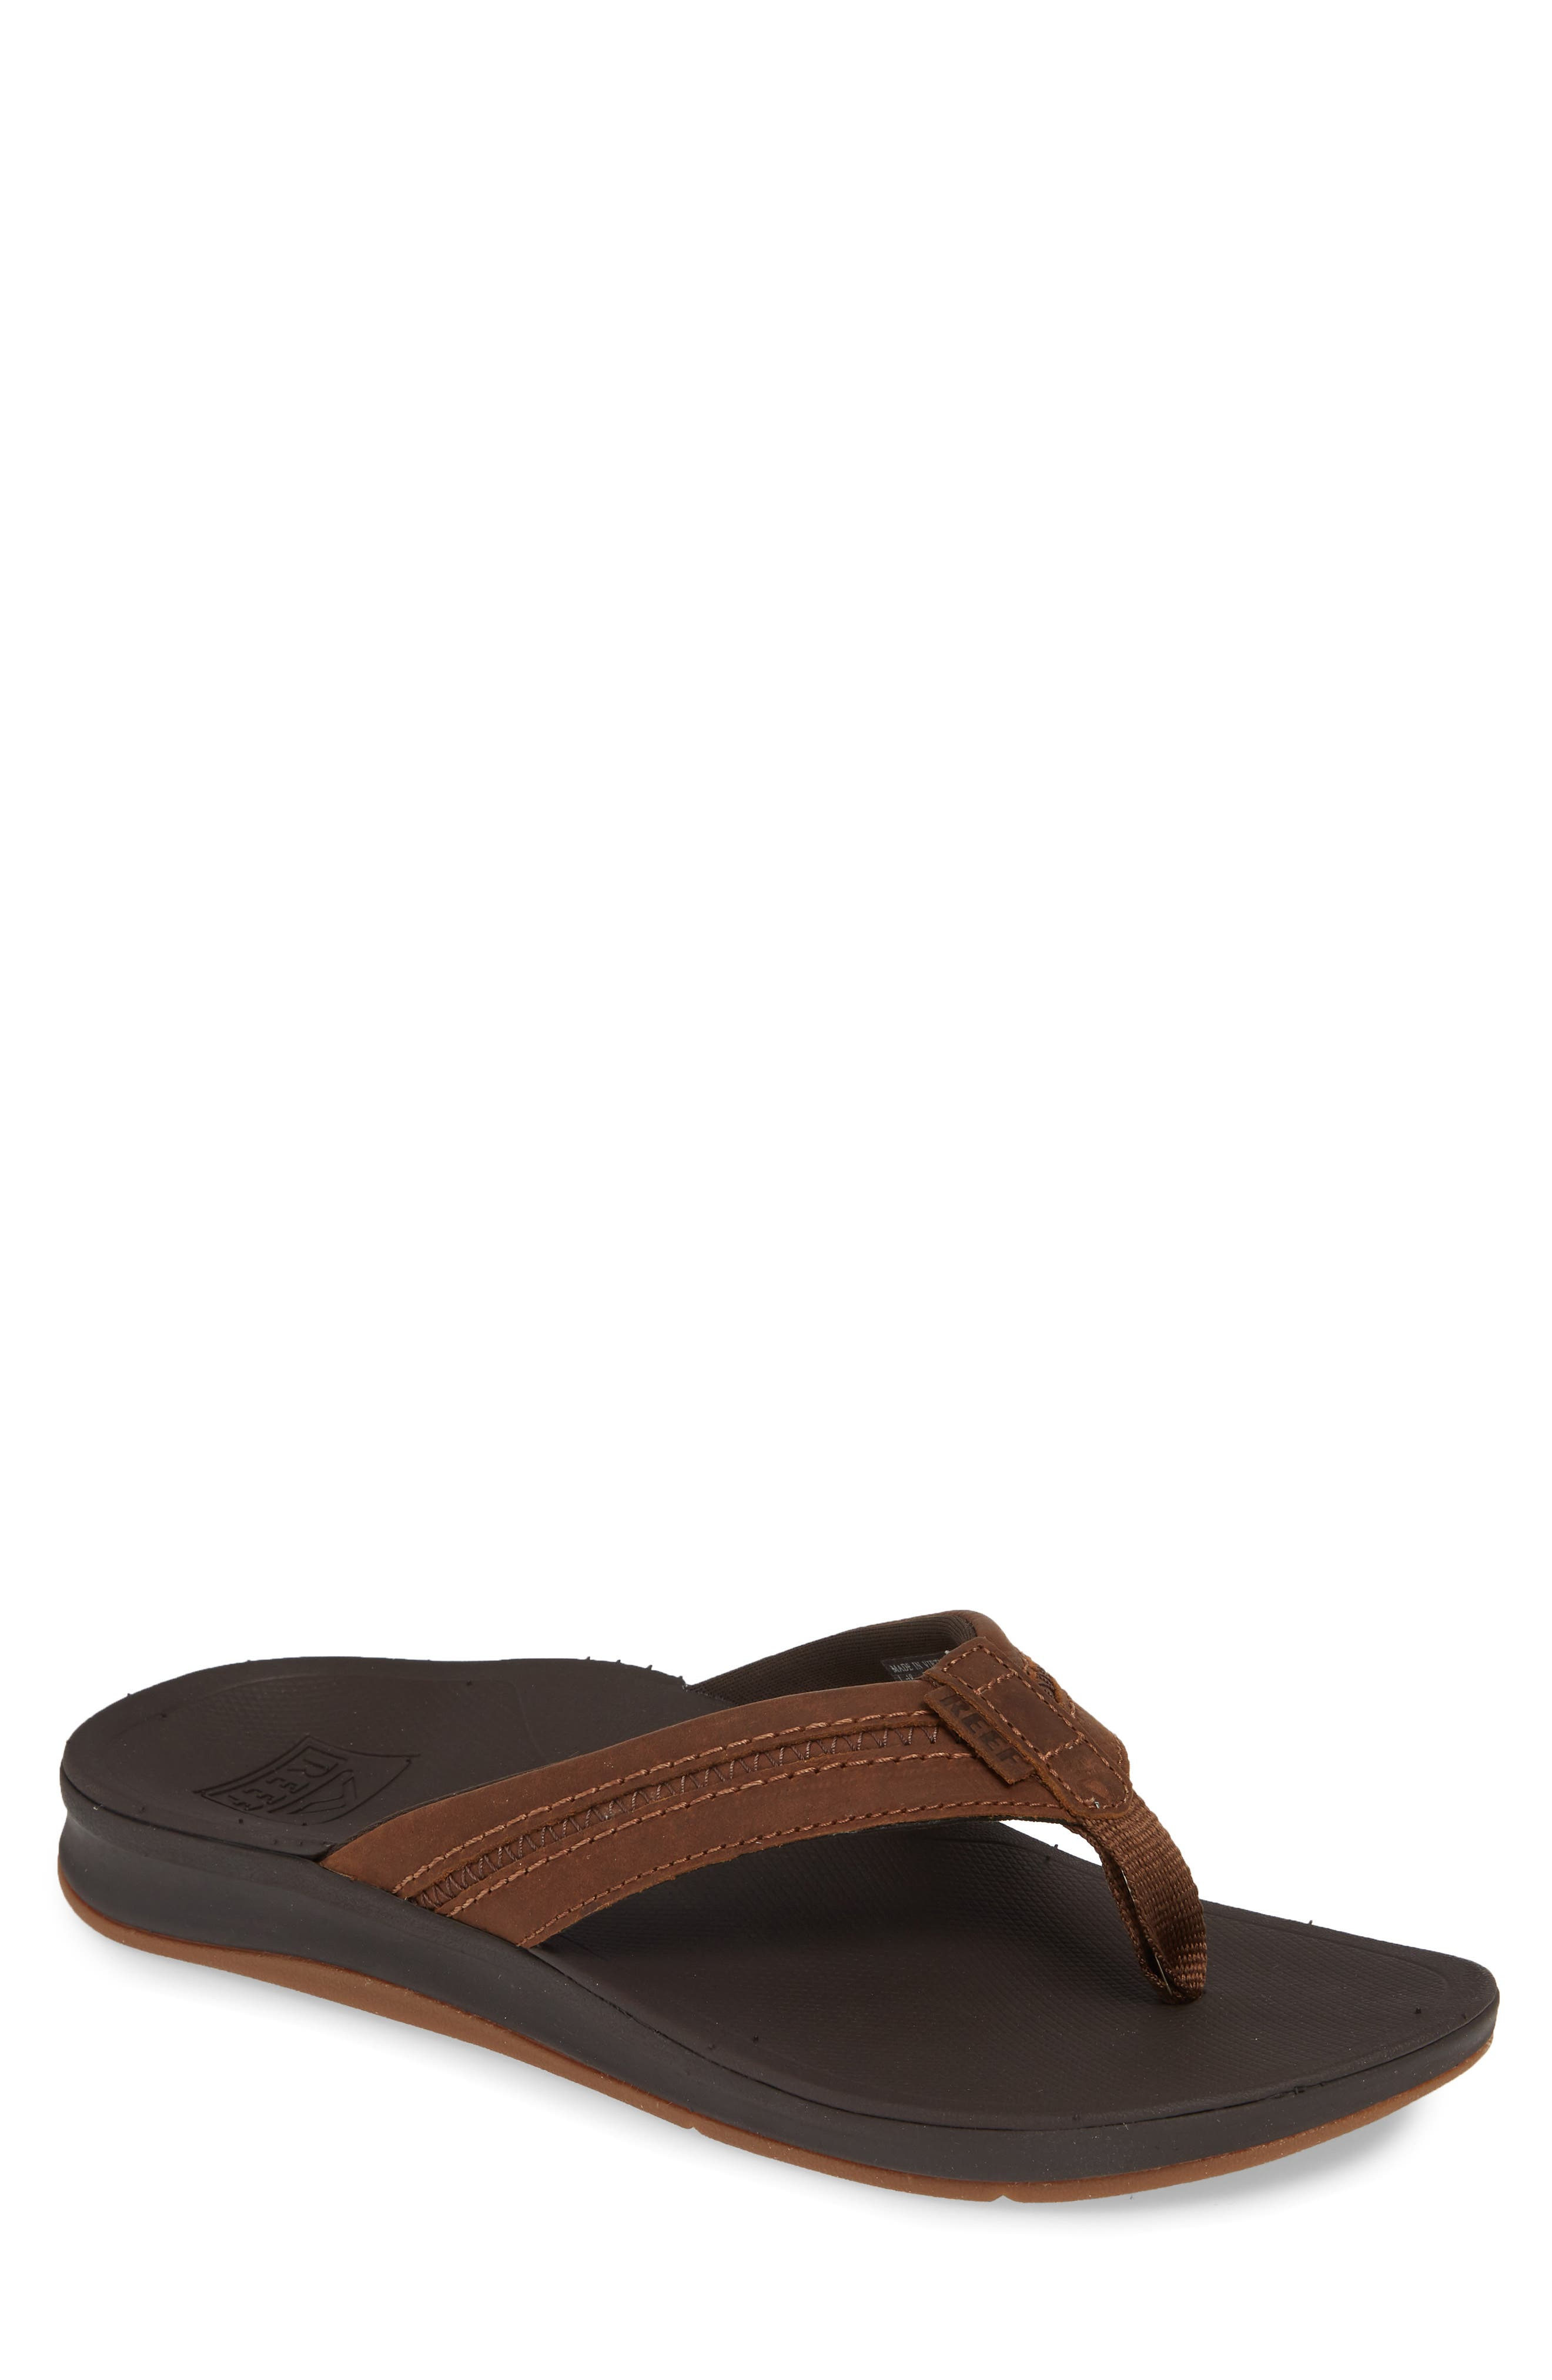 REEF Ortho Bounce Coast Flip Flop, Main, color, BROWN